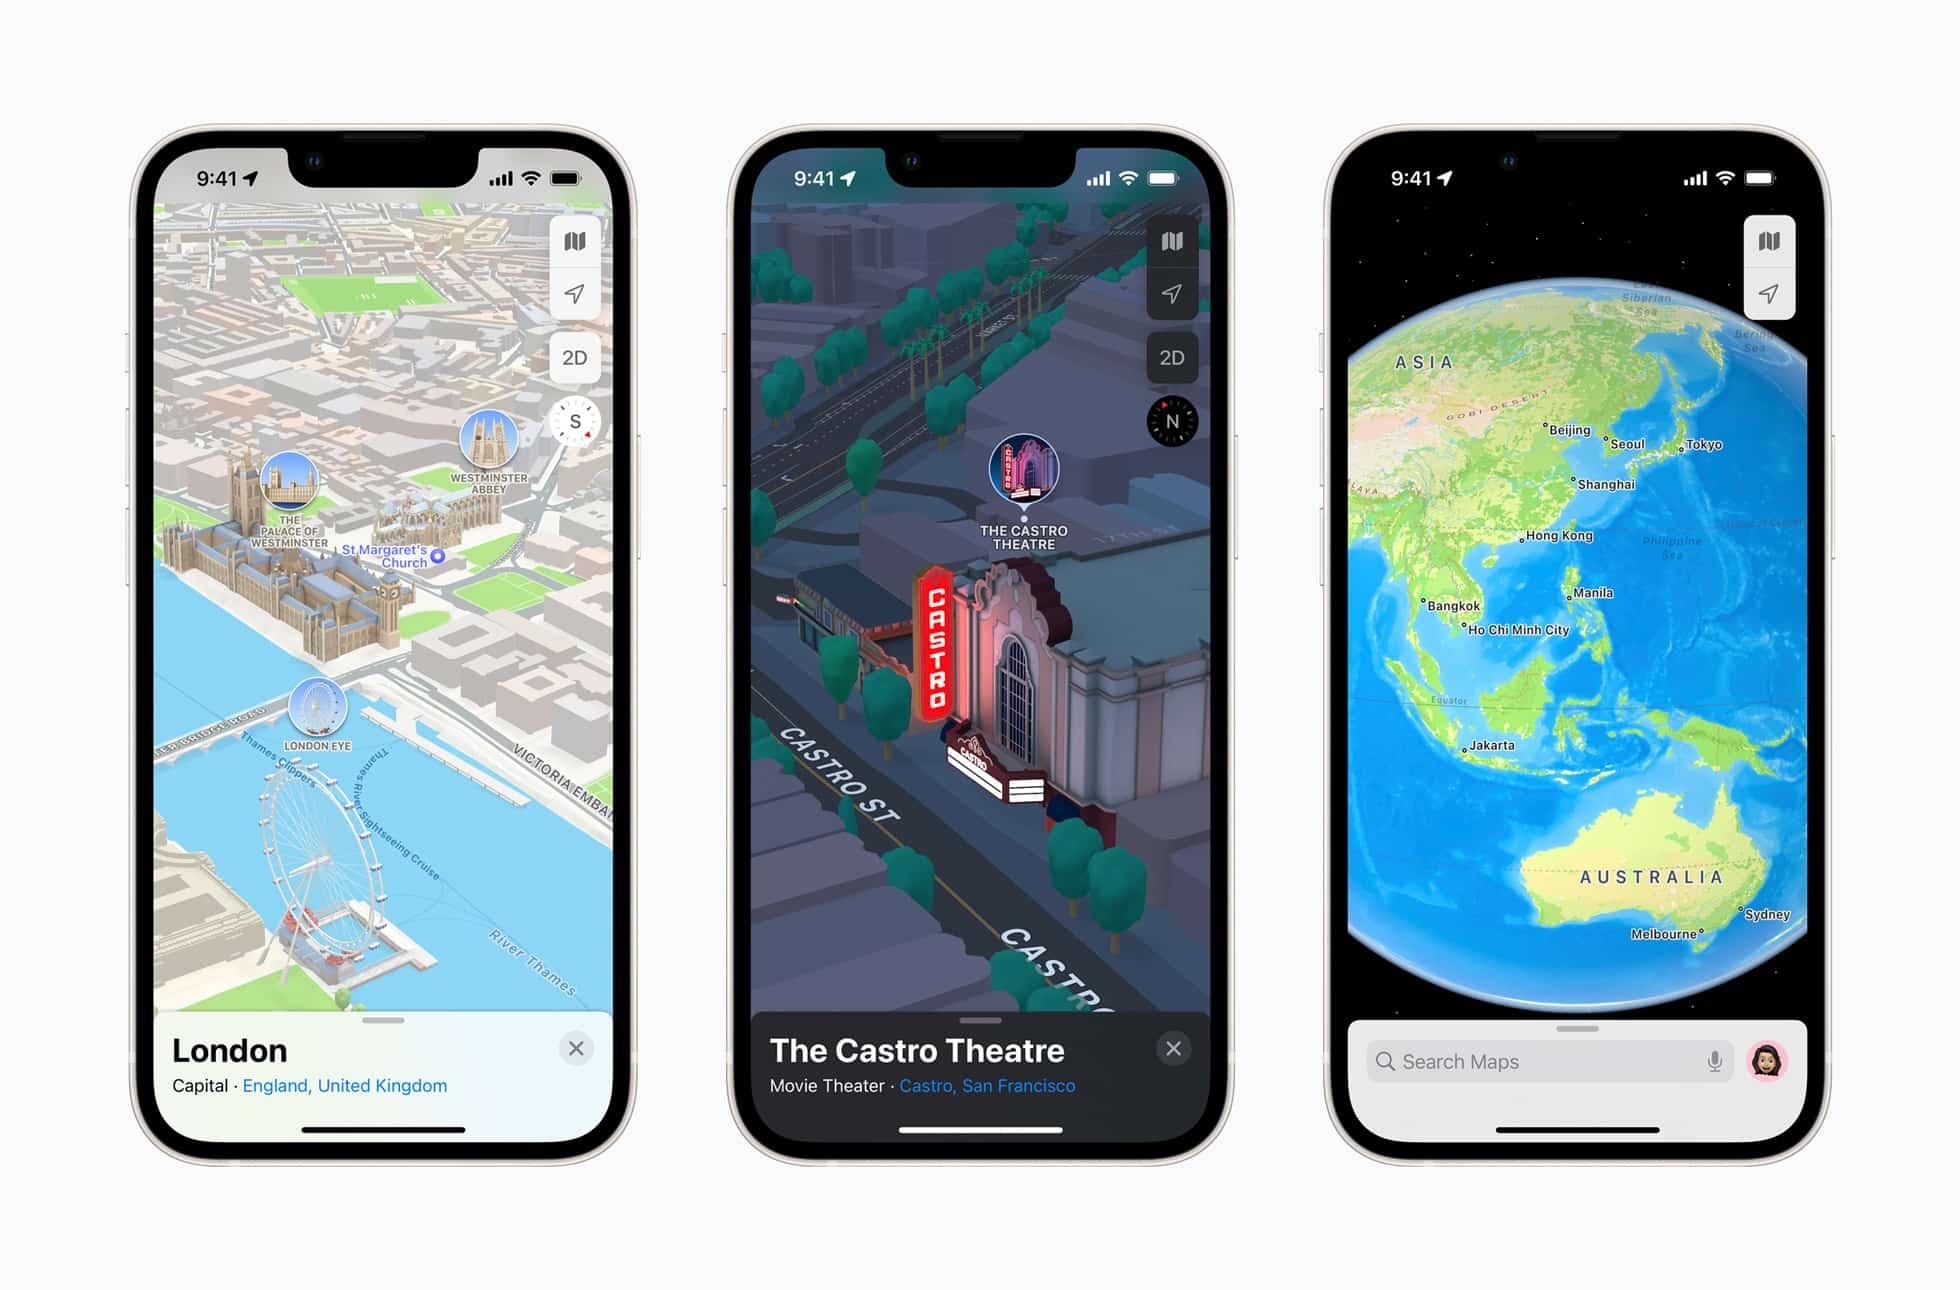 Apple Maps now offers new ways to navigate major cities in 3D